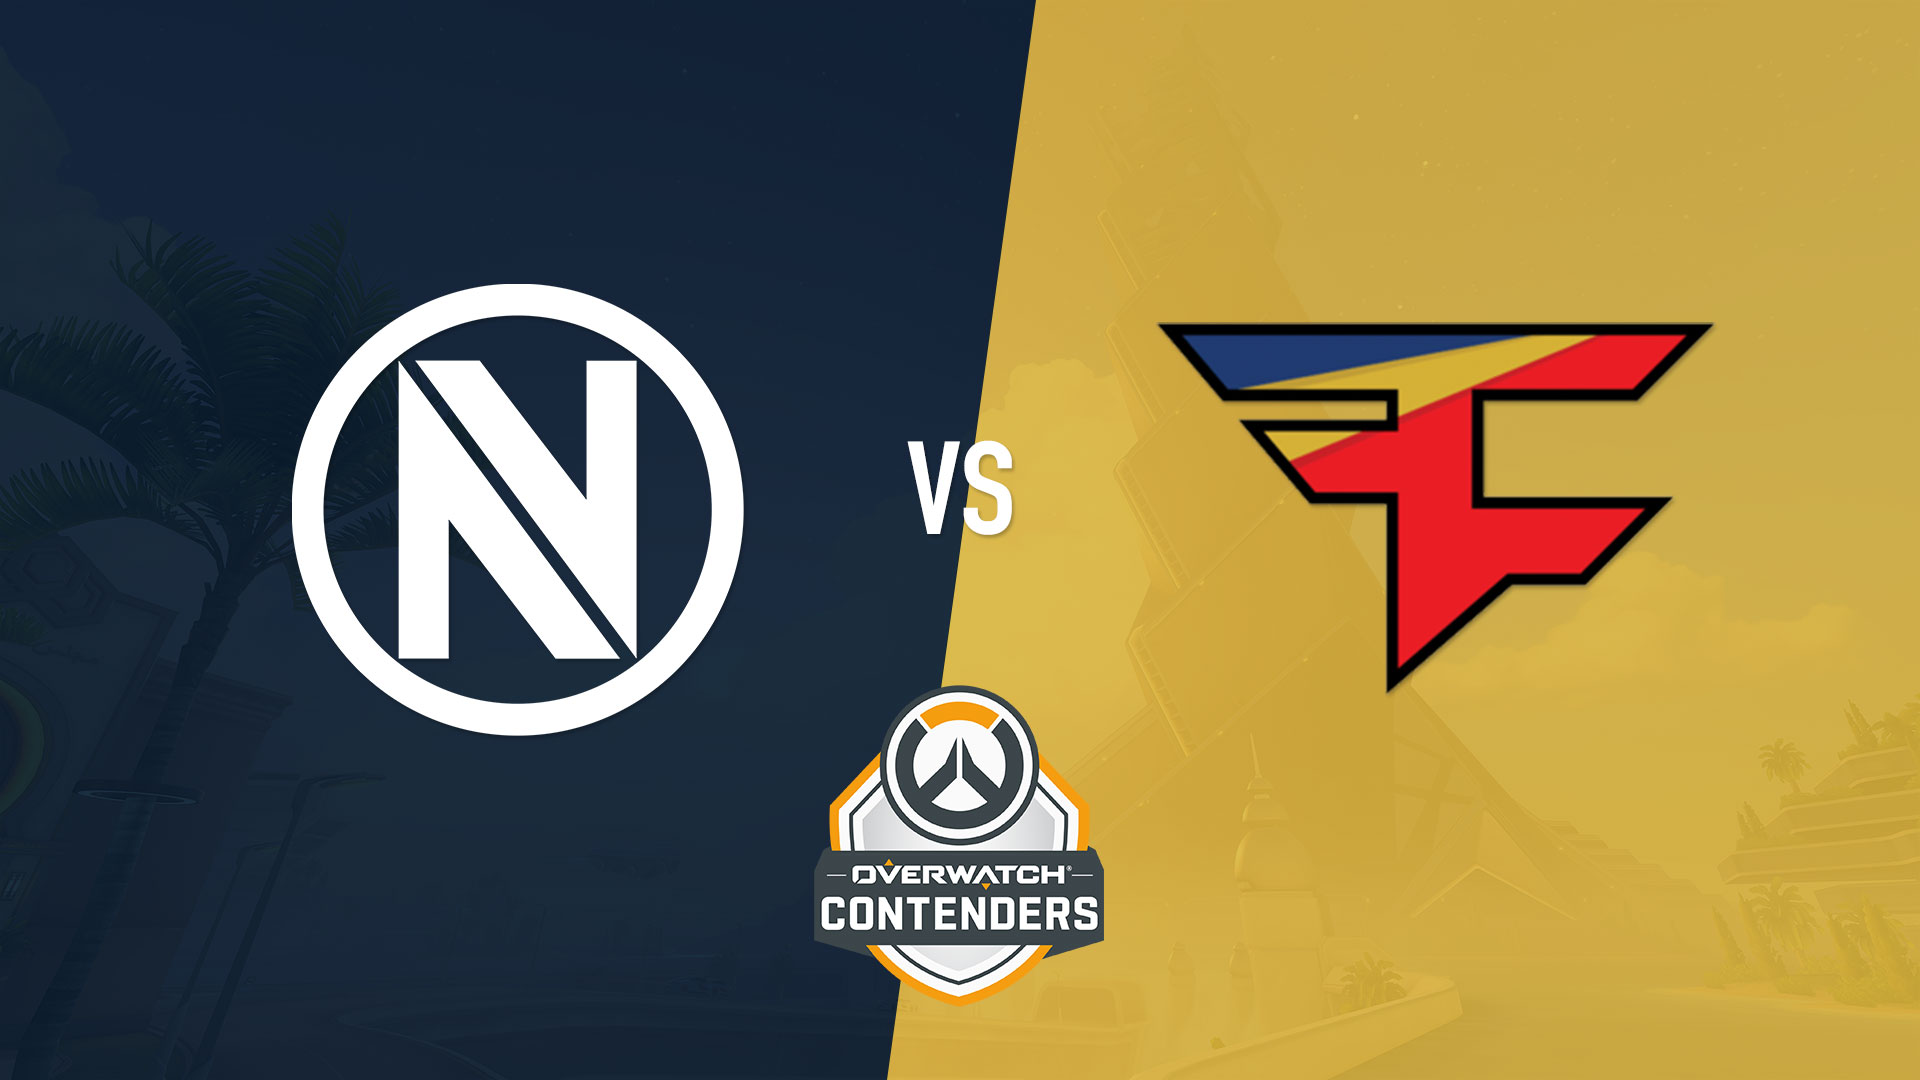 Mlg video overwatch contenders season 1 faze clan vs rogue overwatch contenders season 1 team envyus vs faze clan buycottarizona